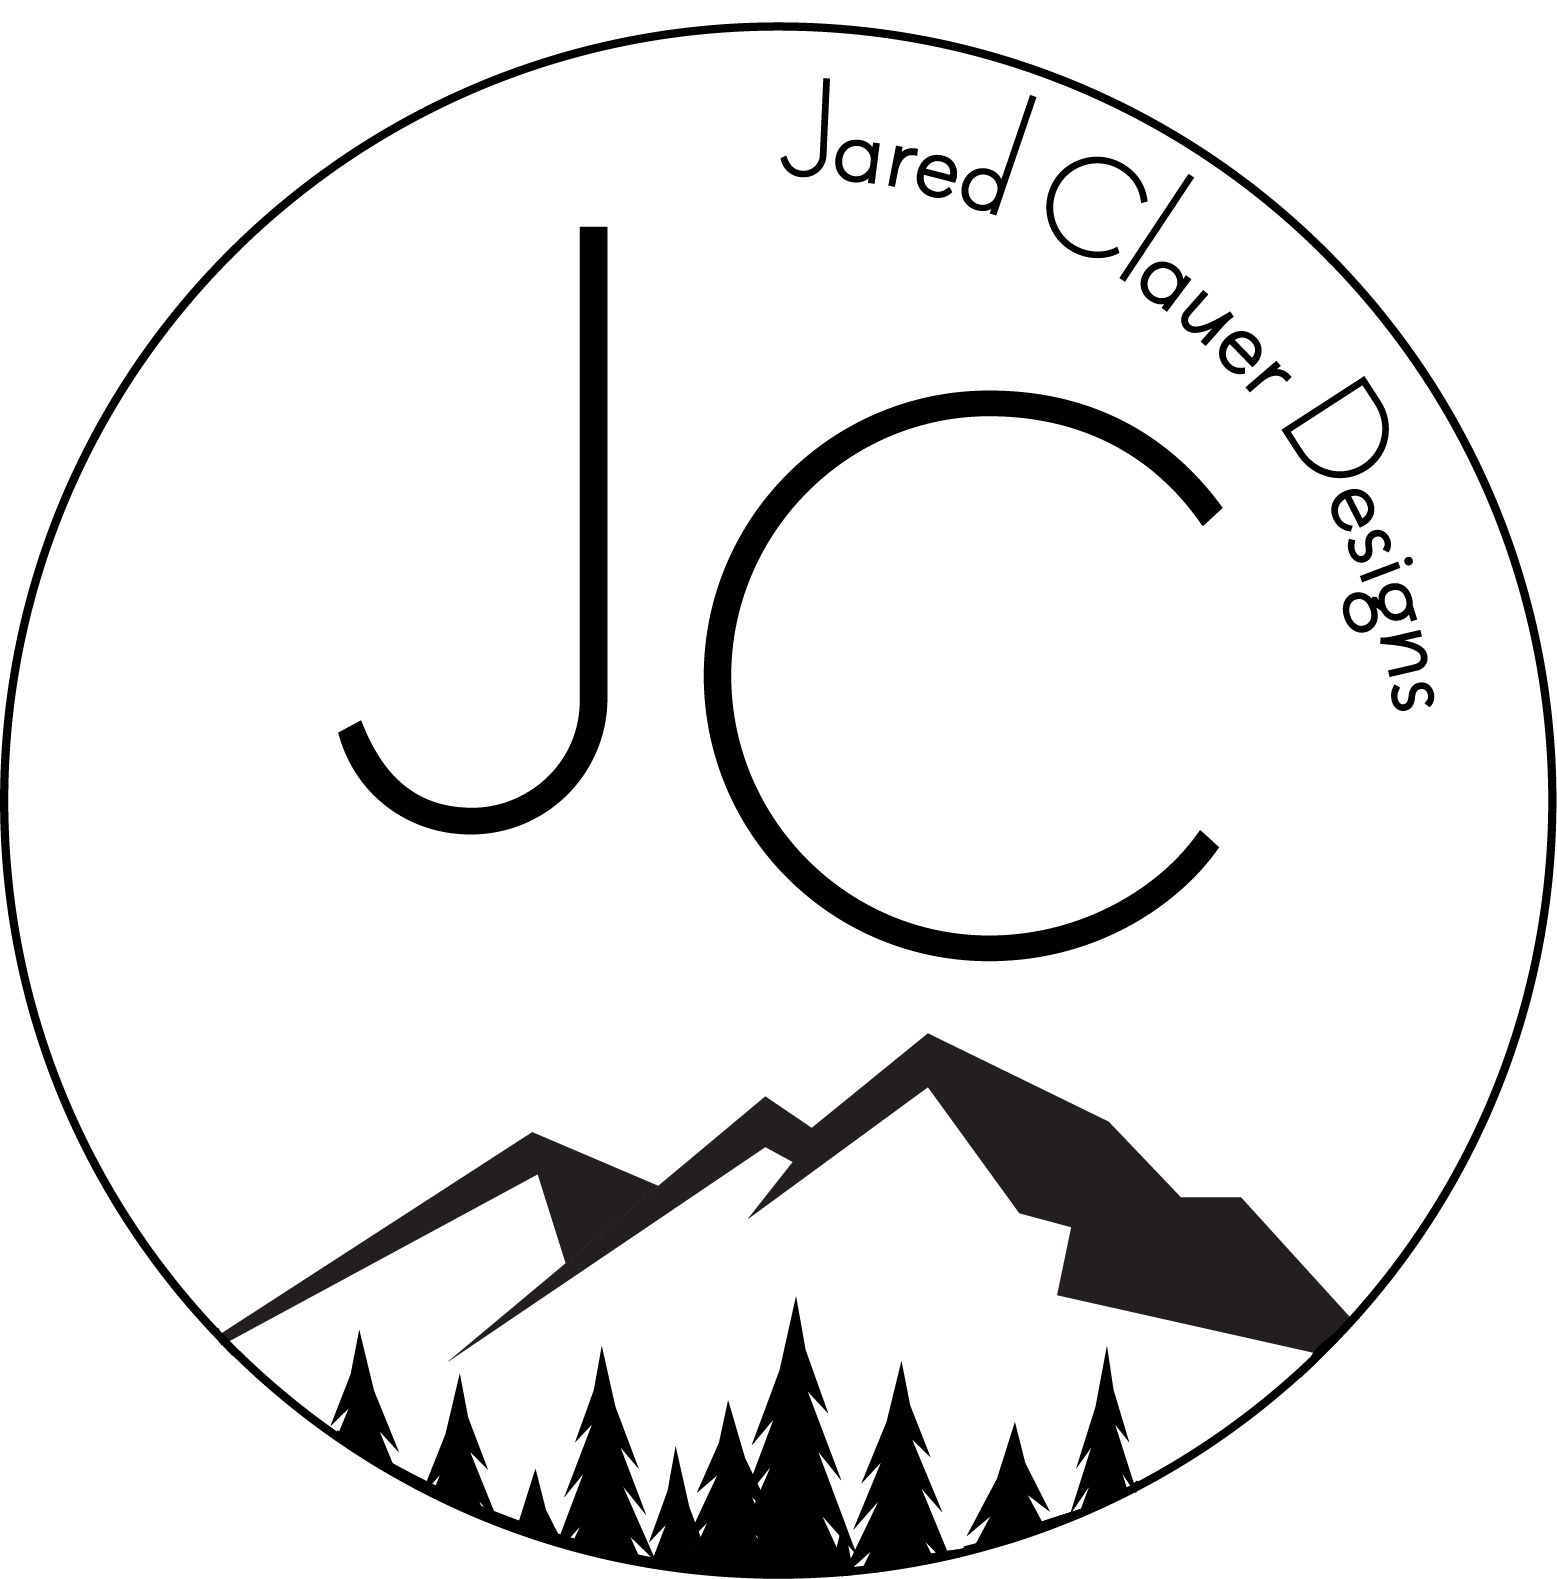 Jared Clauer Designs